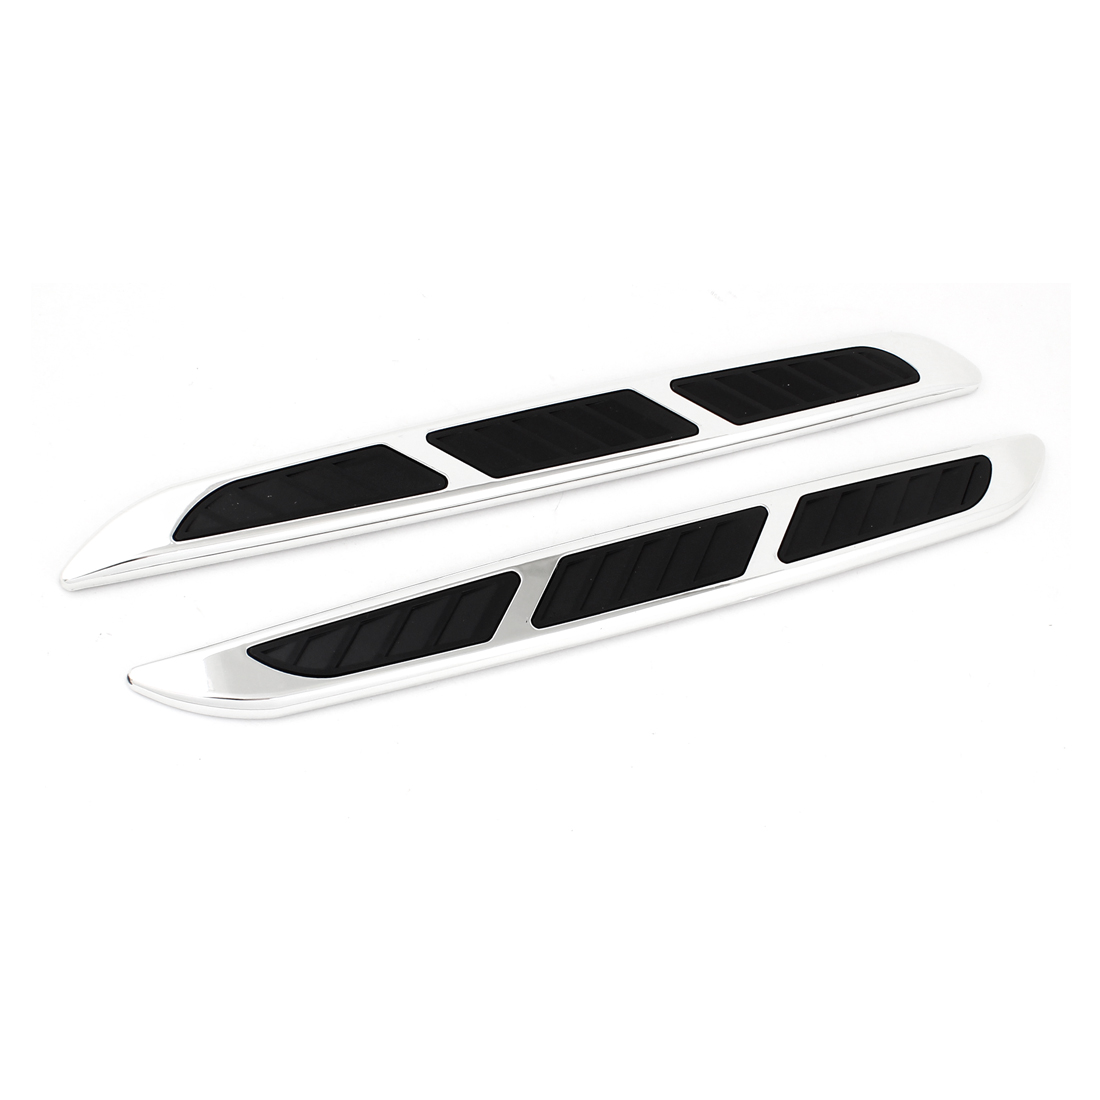 2 Pieces Black Silver Tone Plastic Decorative Bumper Guard Protector for Car